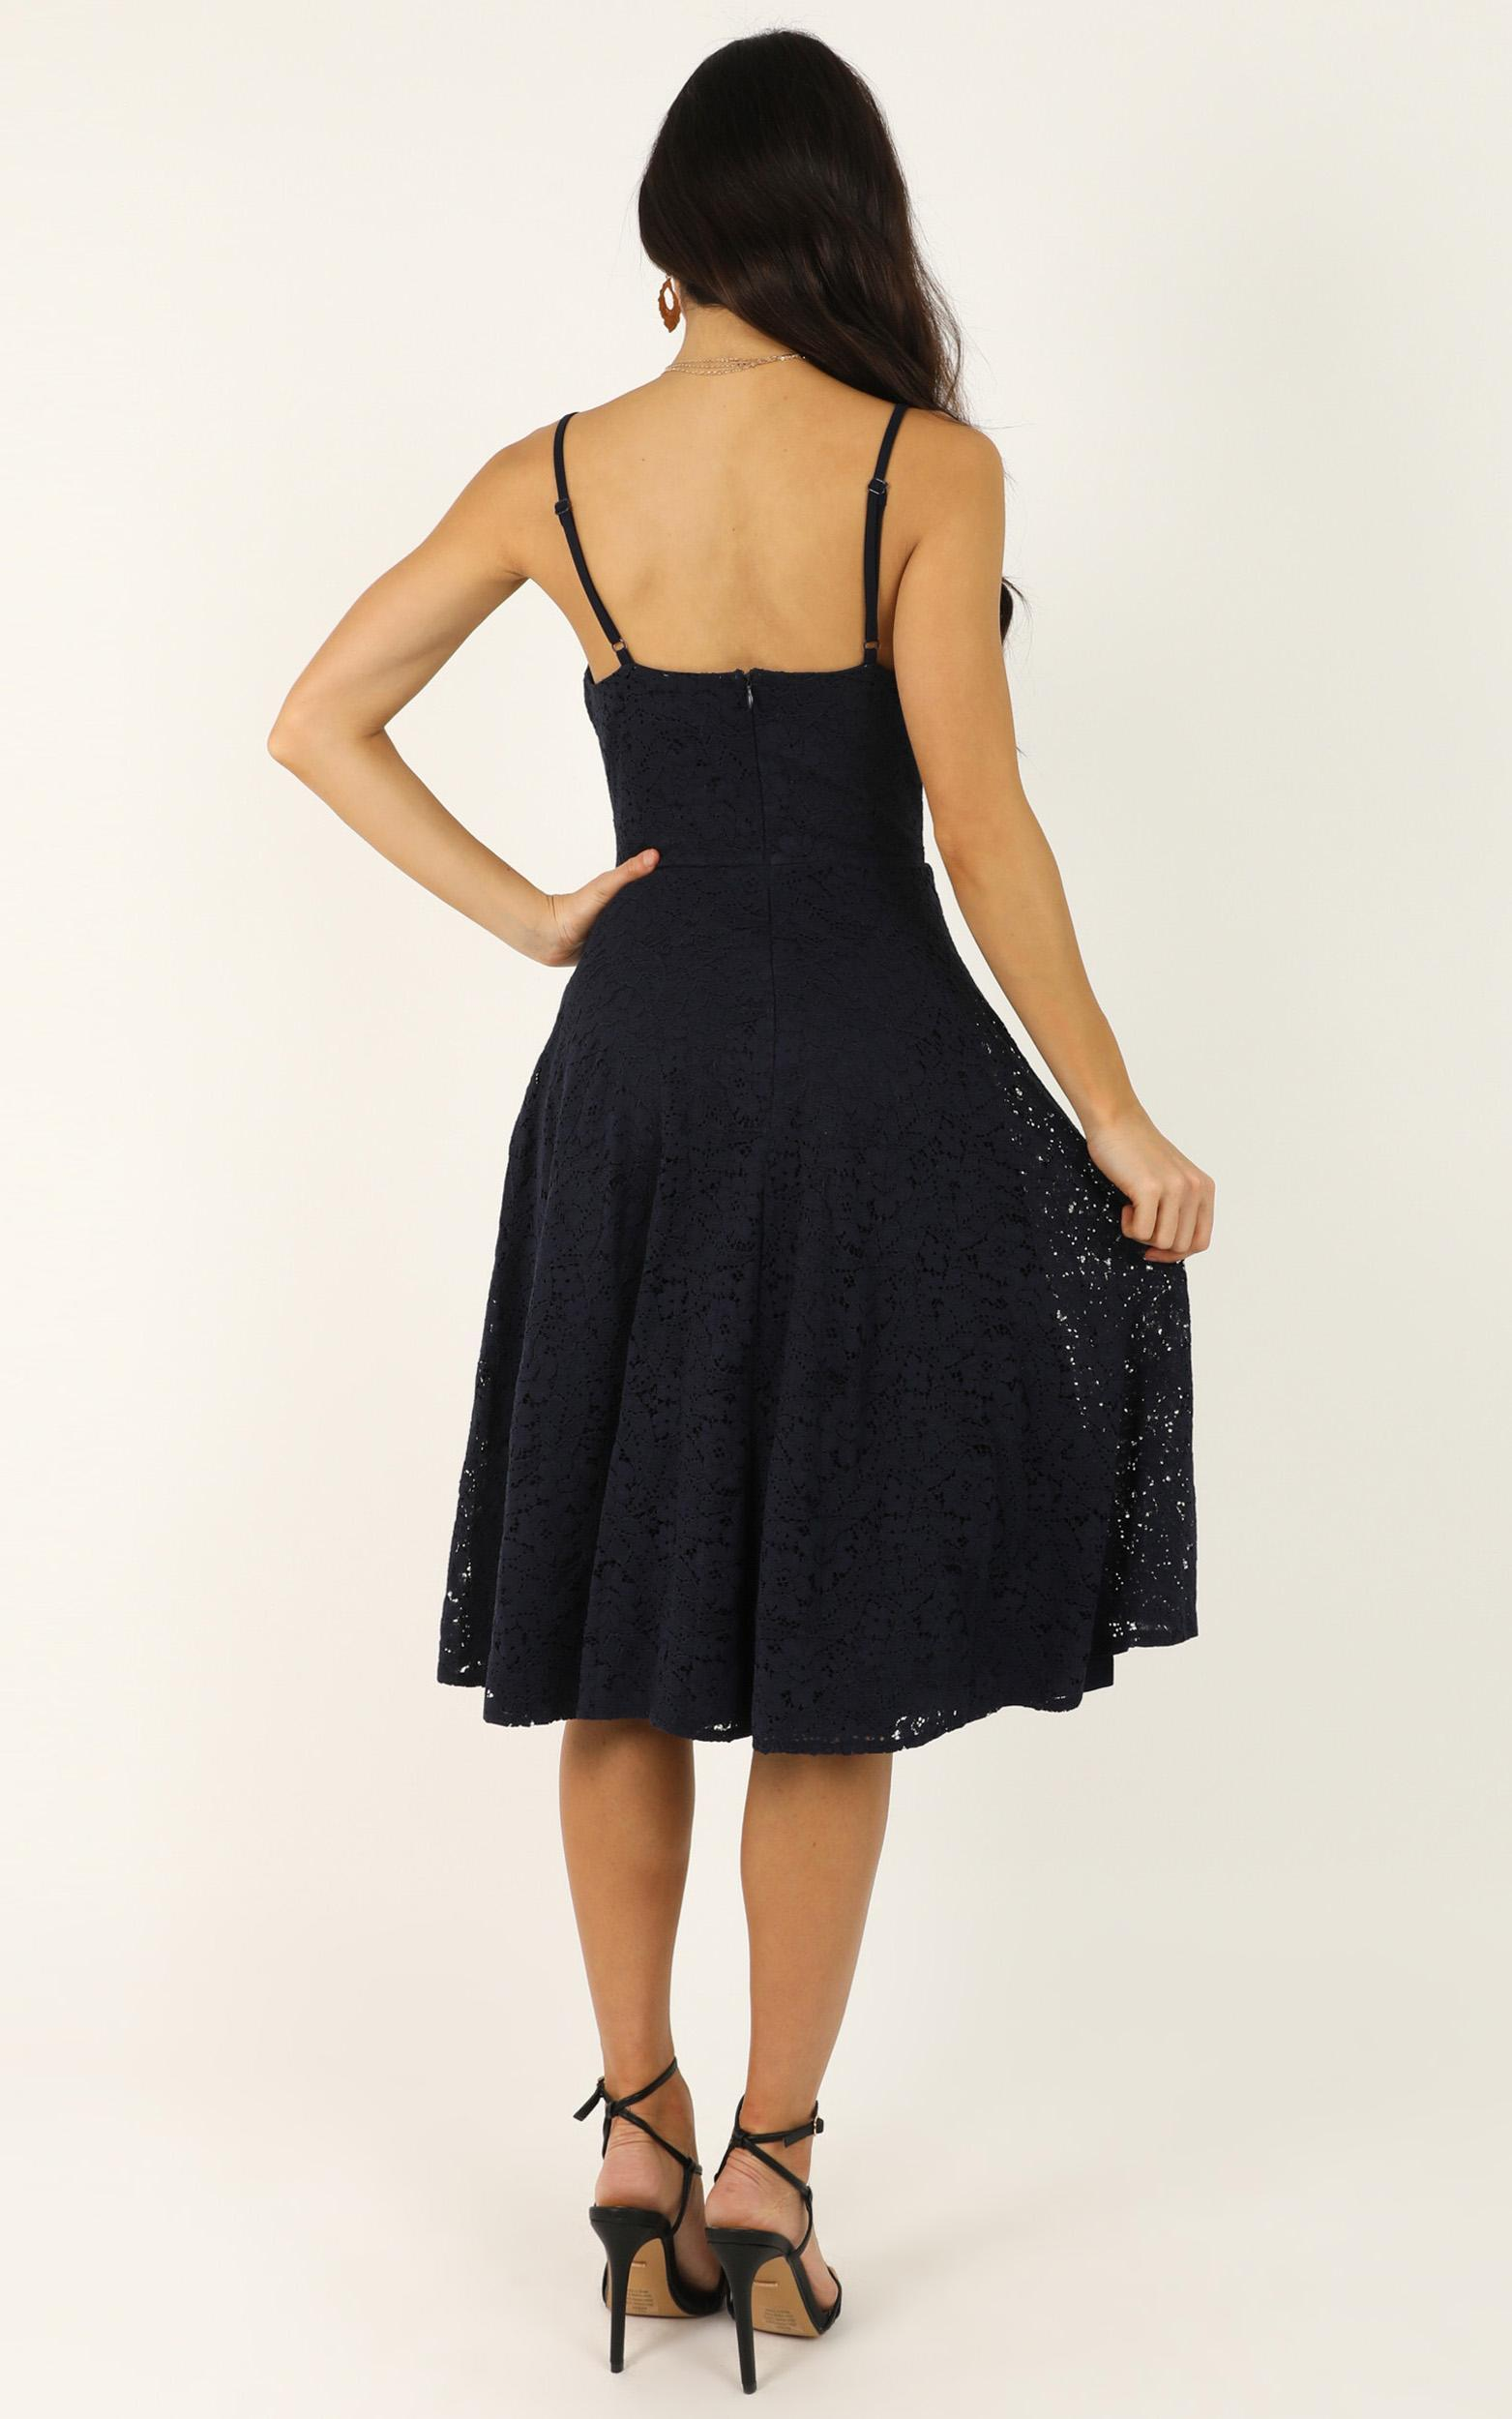 Far Beyond Dress in navy lace - 20 (XXXXL), Navy, hi-res image number null